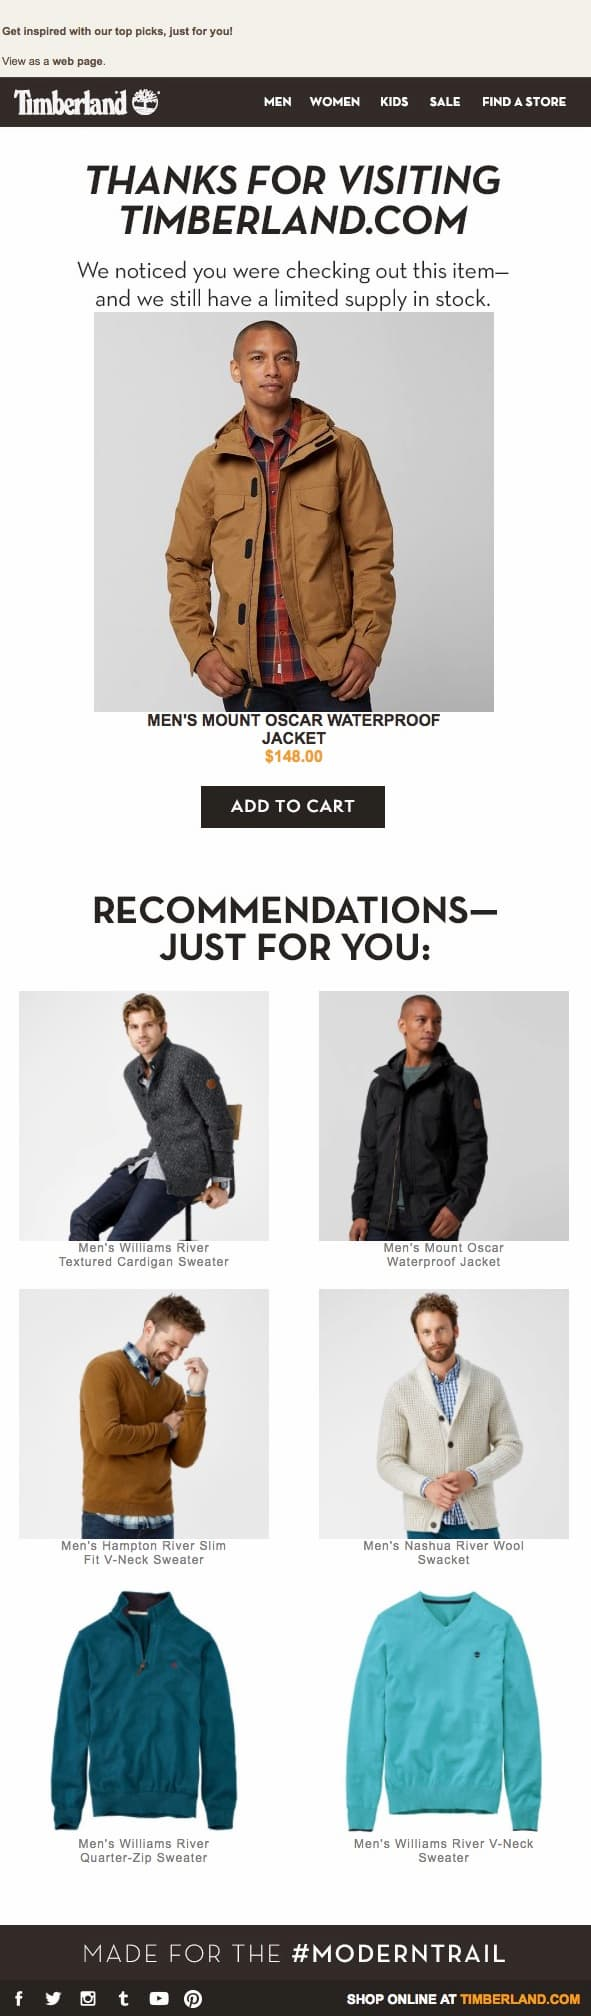 Browse abandonment email featuring the product you saw plus recommendations from Timberland.